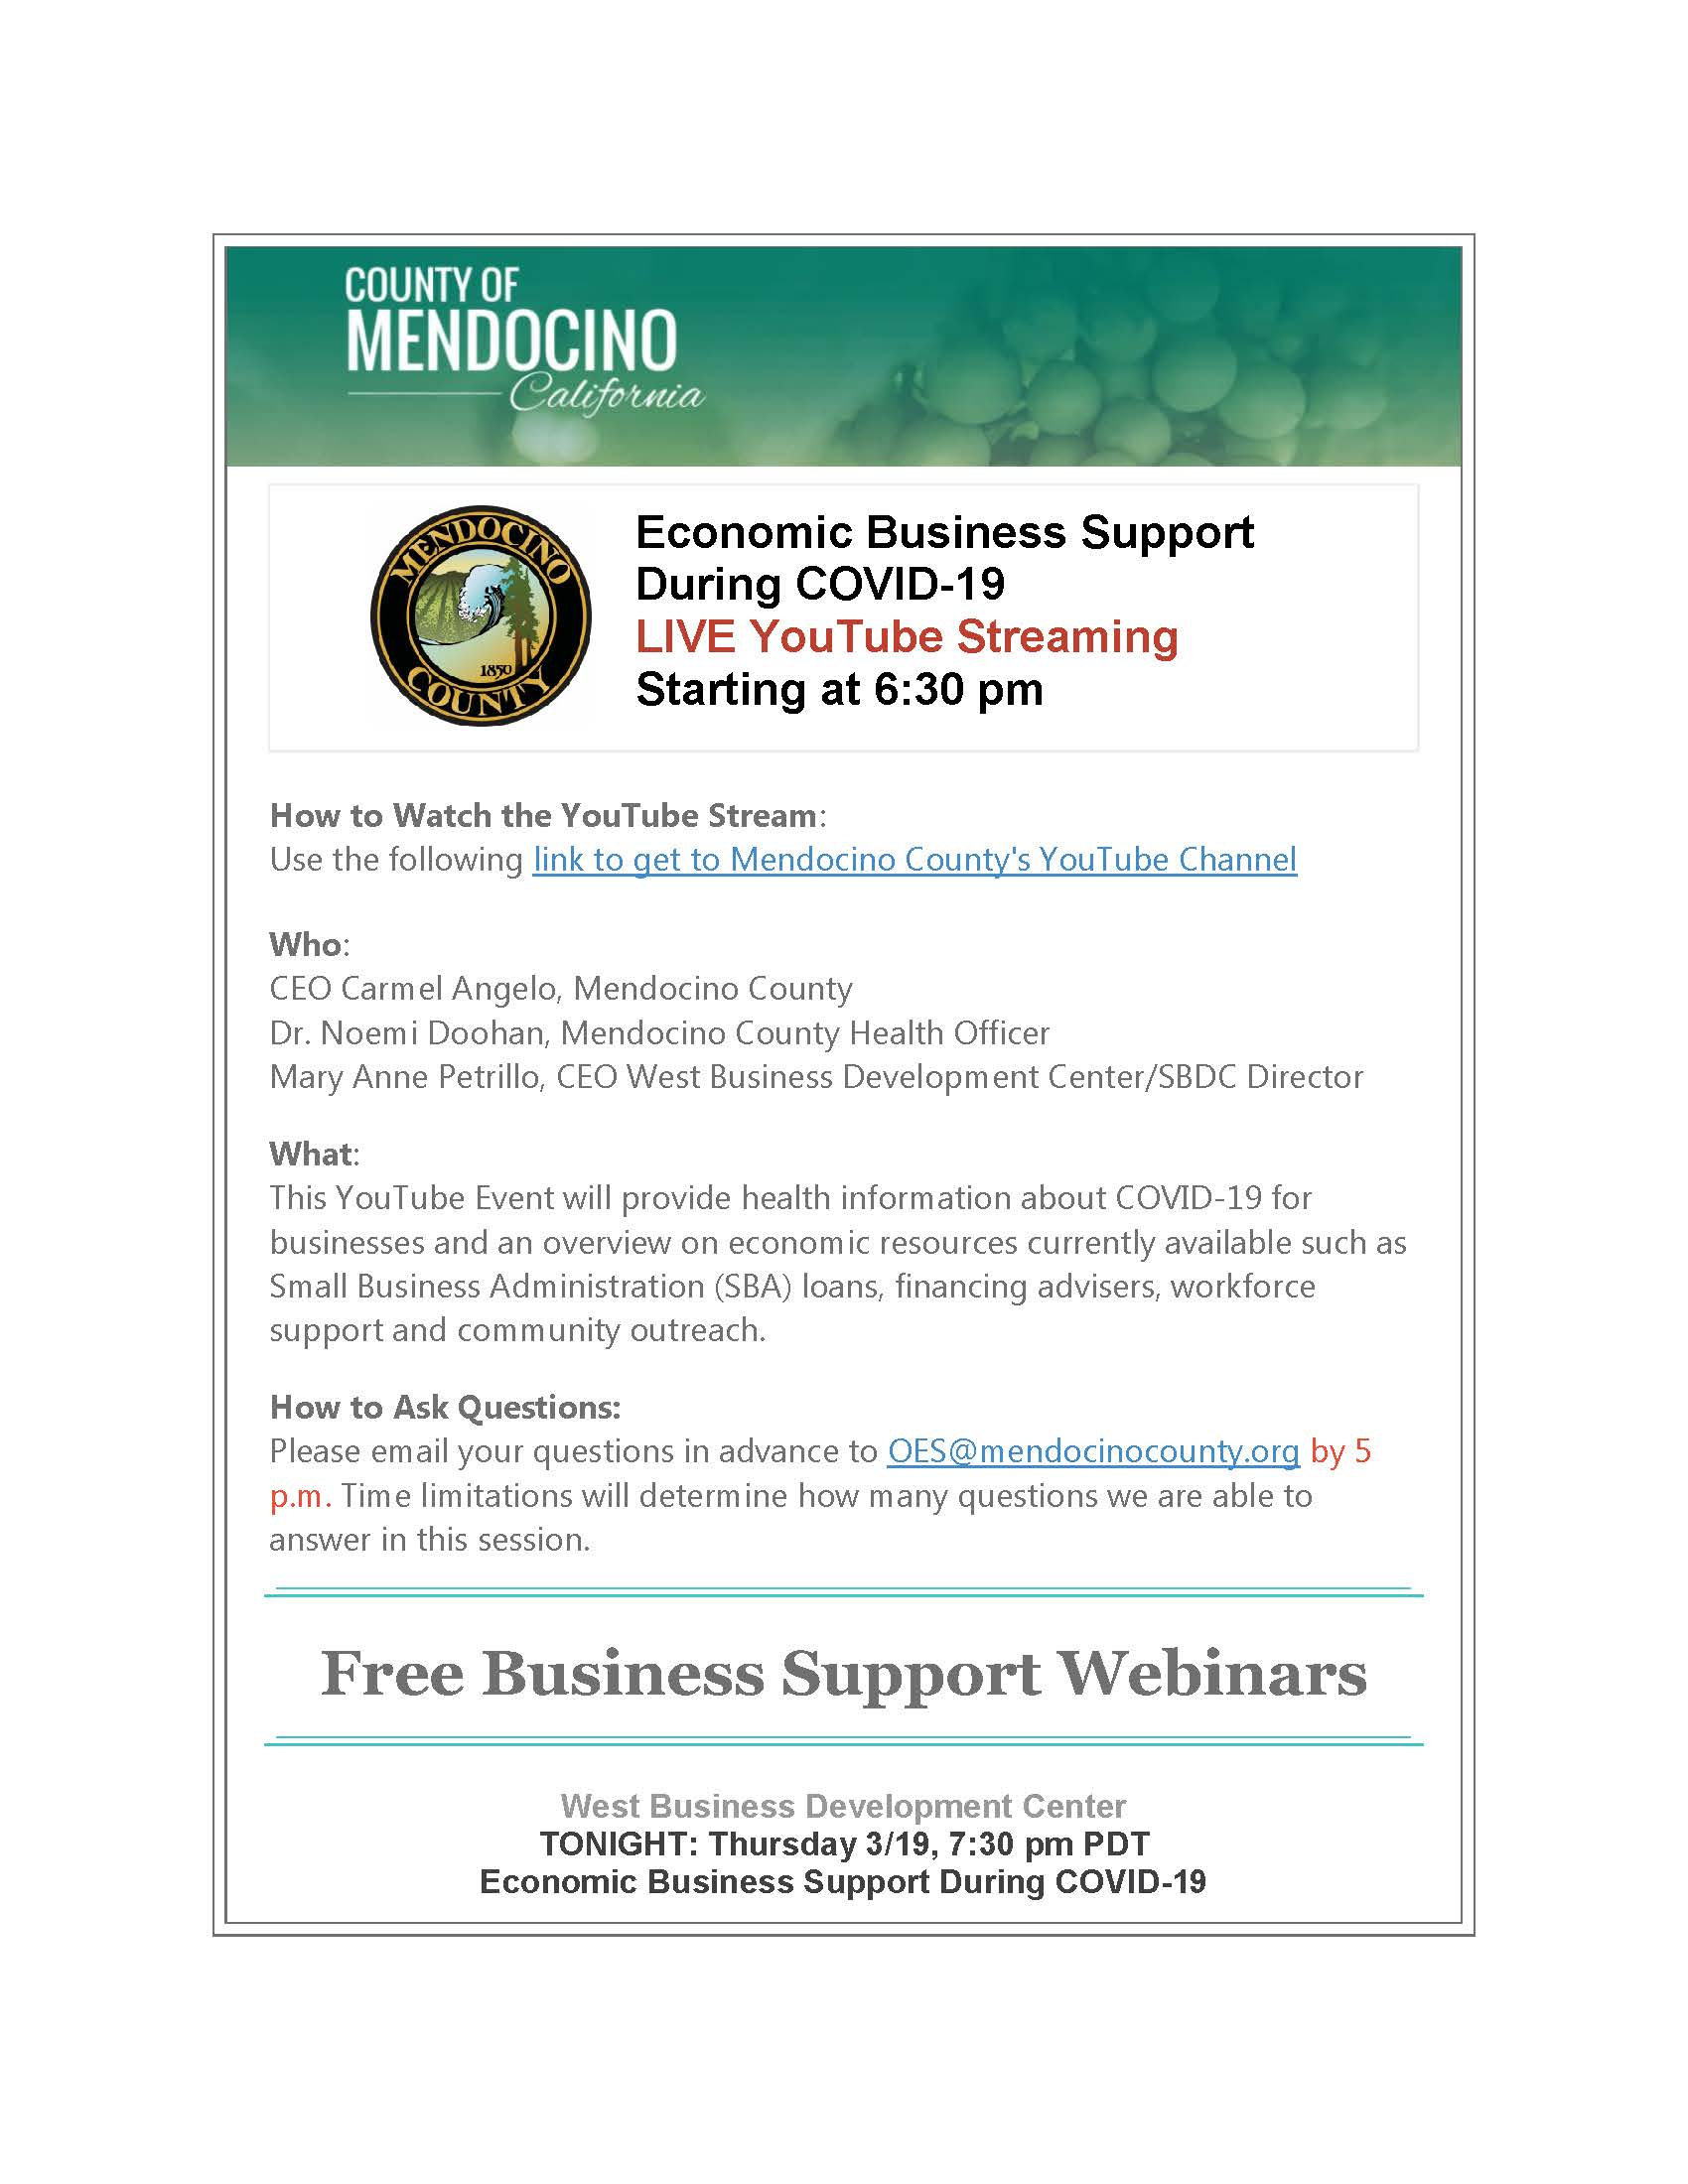 Economic Business Support During COVID_Page_1